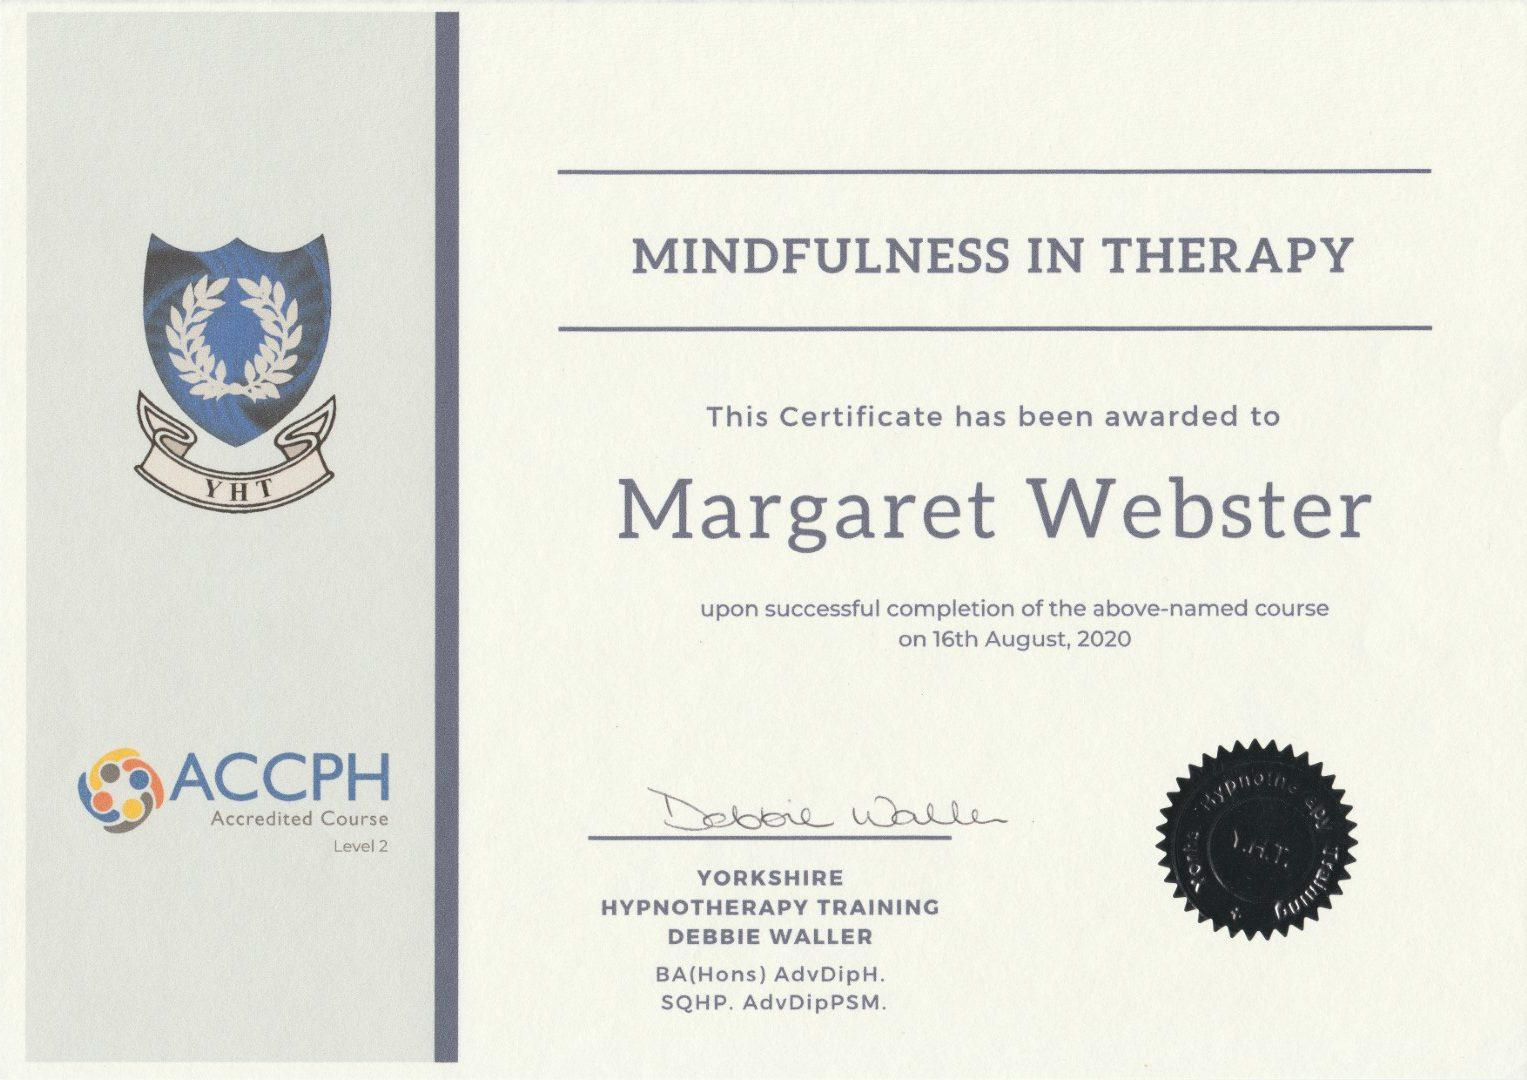 Mindfulness-in-therapy-Large-rotated-1